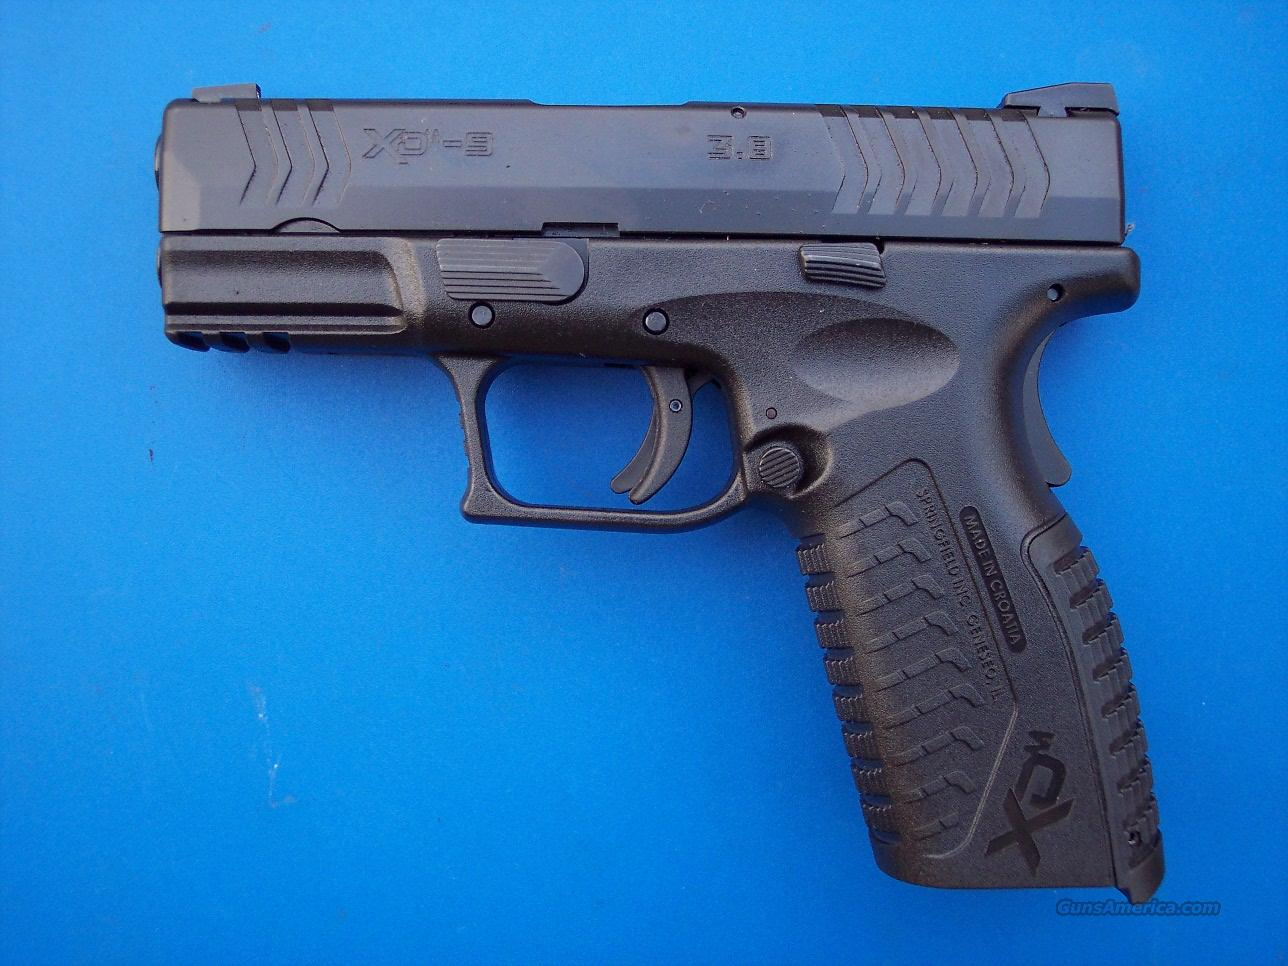 Springfield XDM Compact 9mm 3.8 NEW 19 rd HI-CAP   Guns > Pistols > Springfield Armory Pistols > XD (eXtreme Duty)